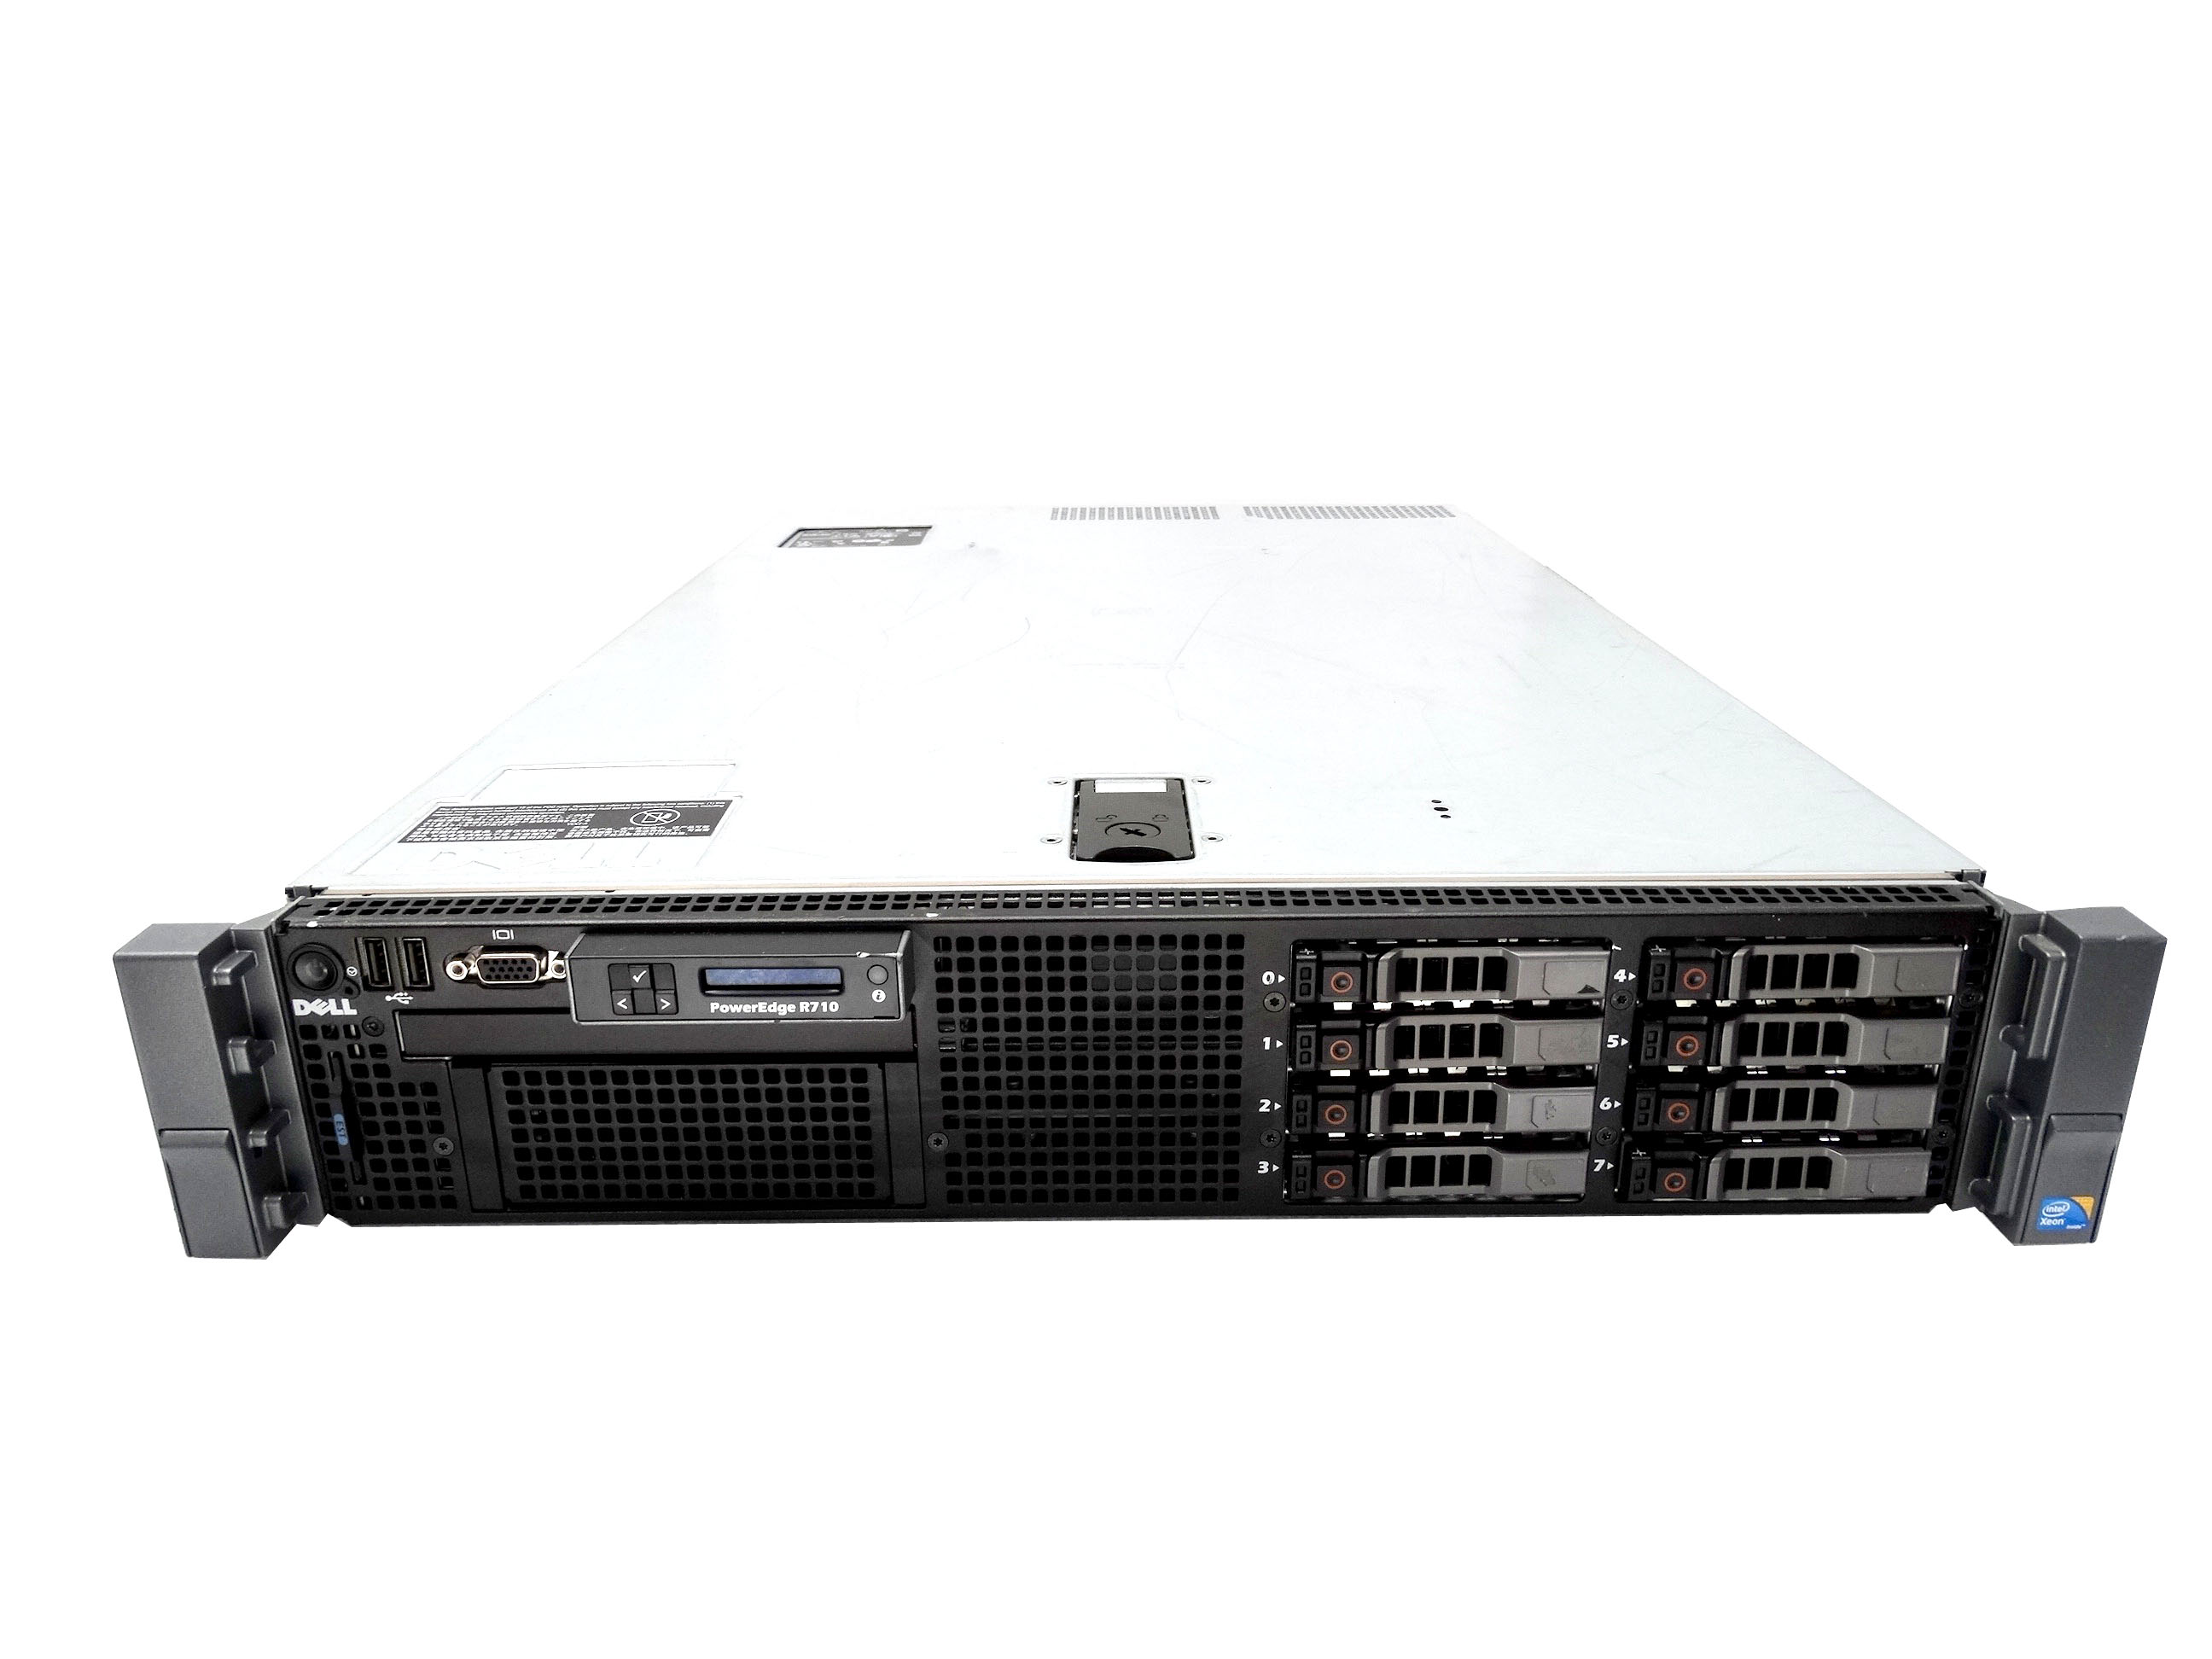 Dell PowerEdge R710 8-Bay SFF 2U Rackmount Server